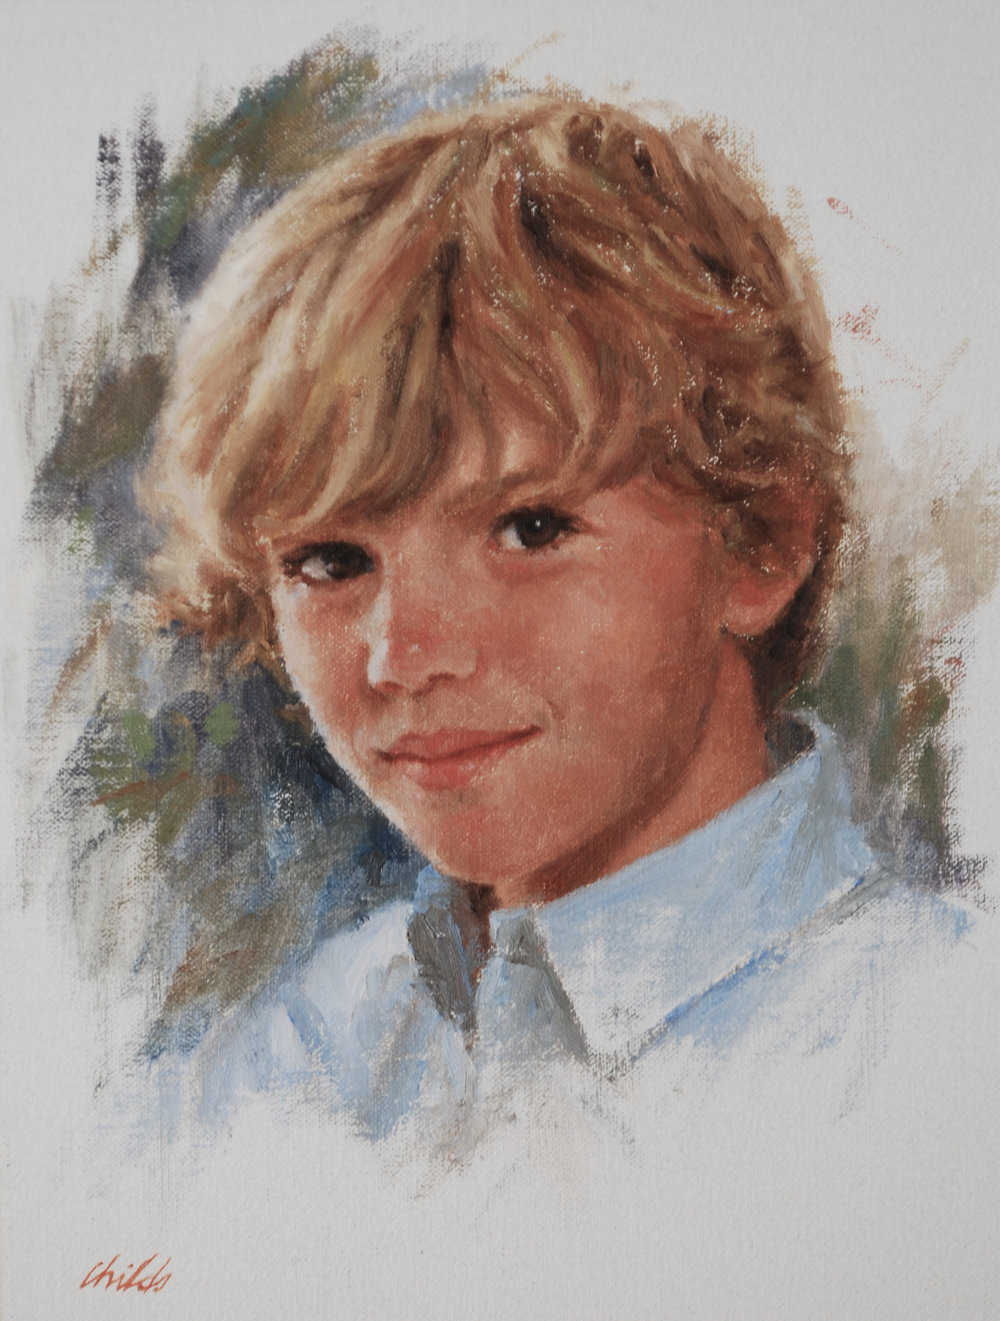 Boy with Blond Hair & Blue Collar - 9x12